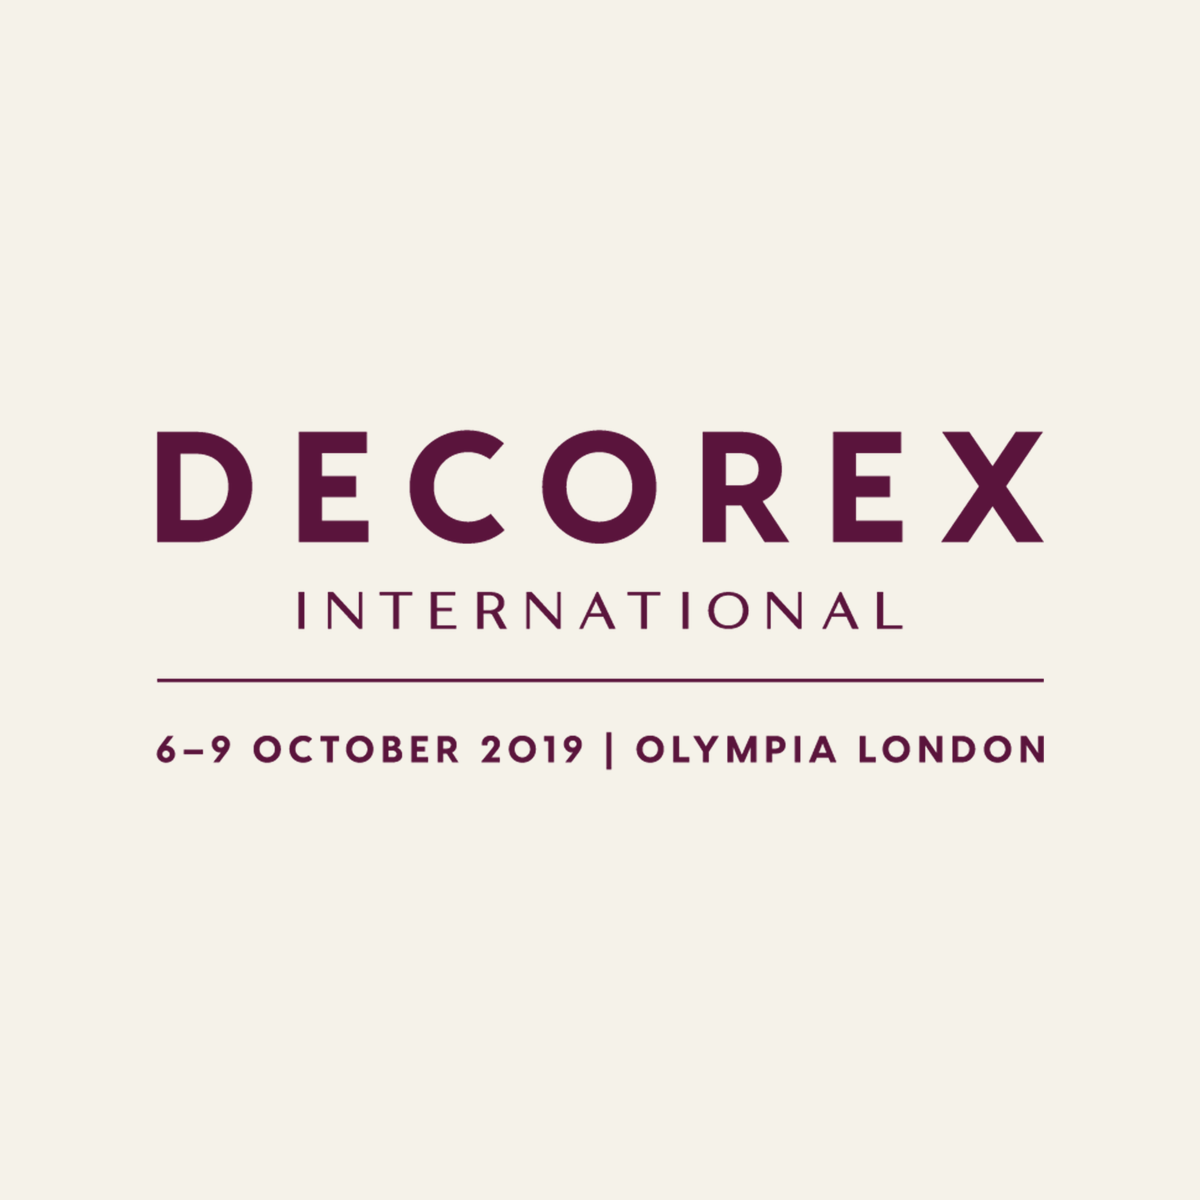 Decorex International 2019 Event Guide decorex international 2019 Decorex International 2019 Event Guide Decorex International 2019 Event Guide 1